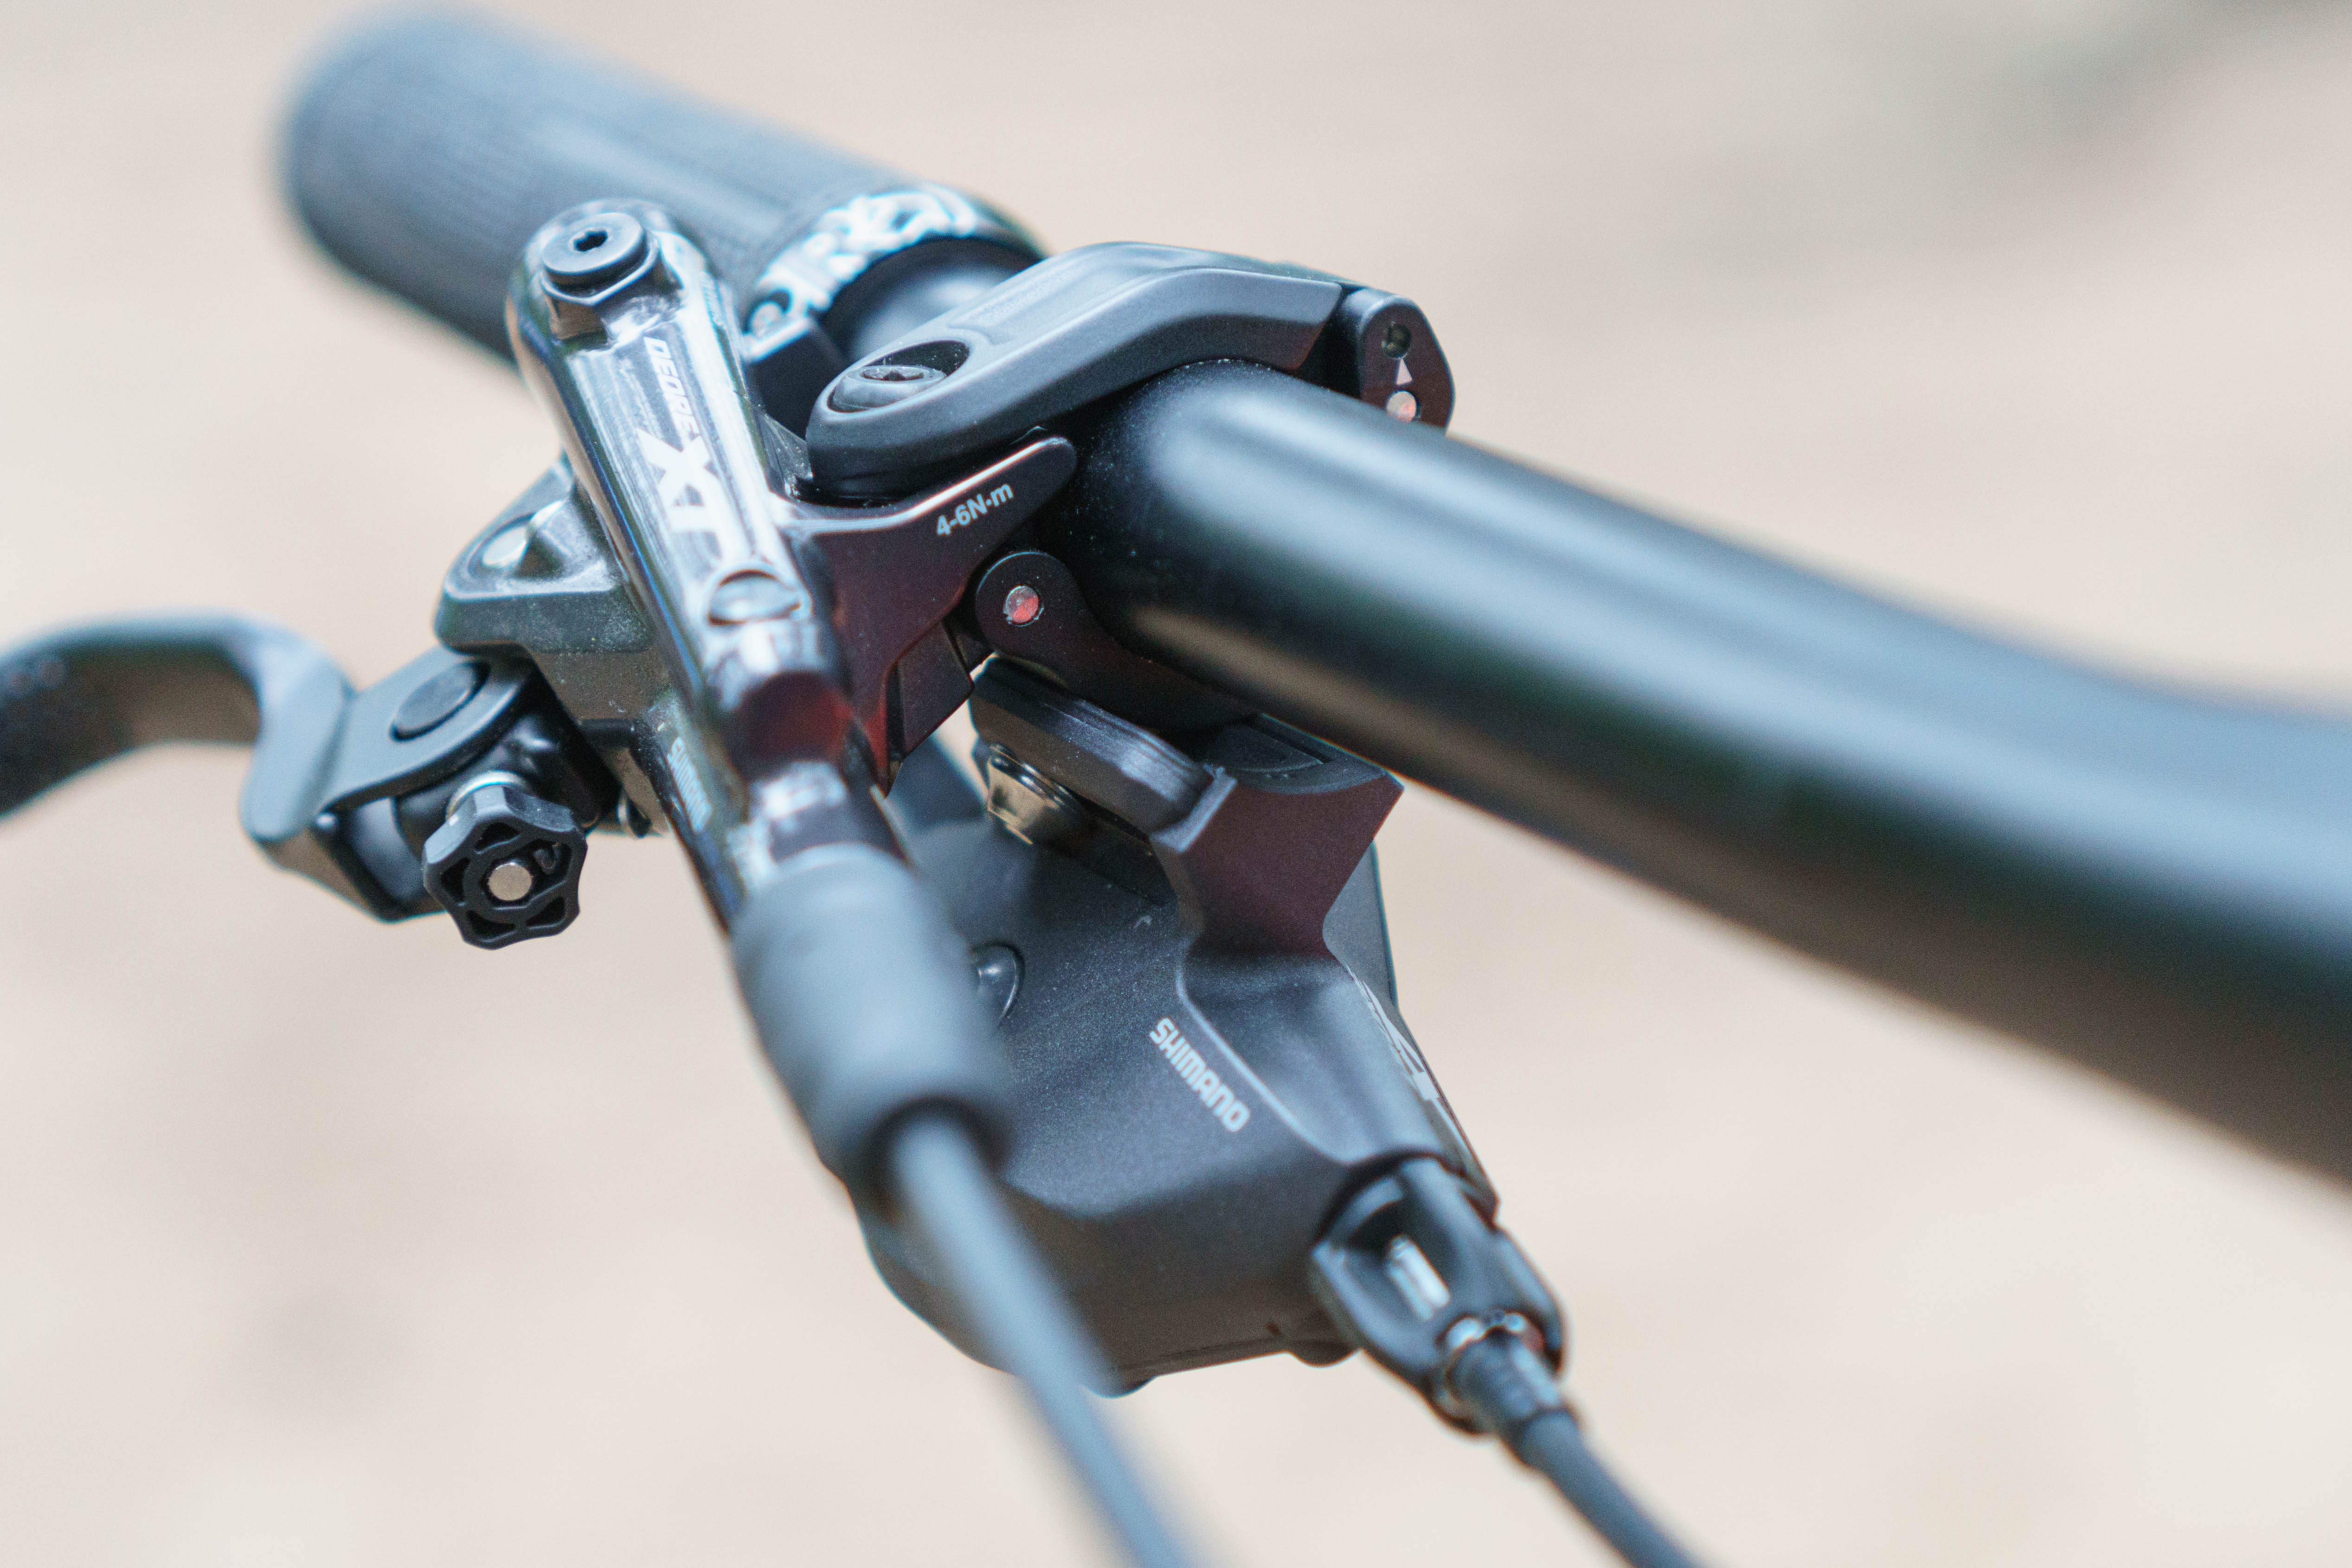 XT M8100 levers and shifters